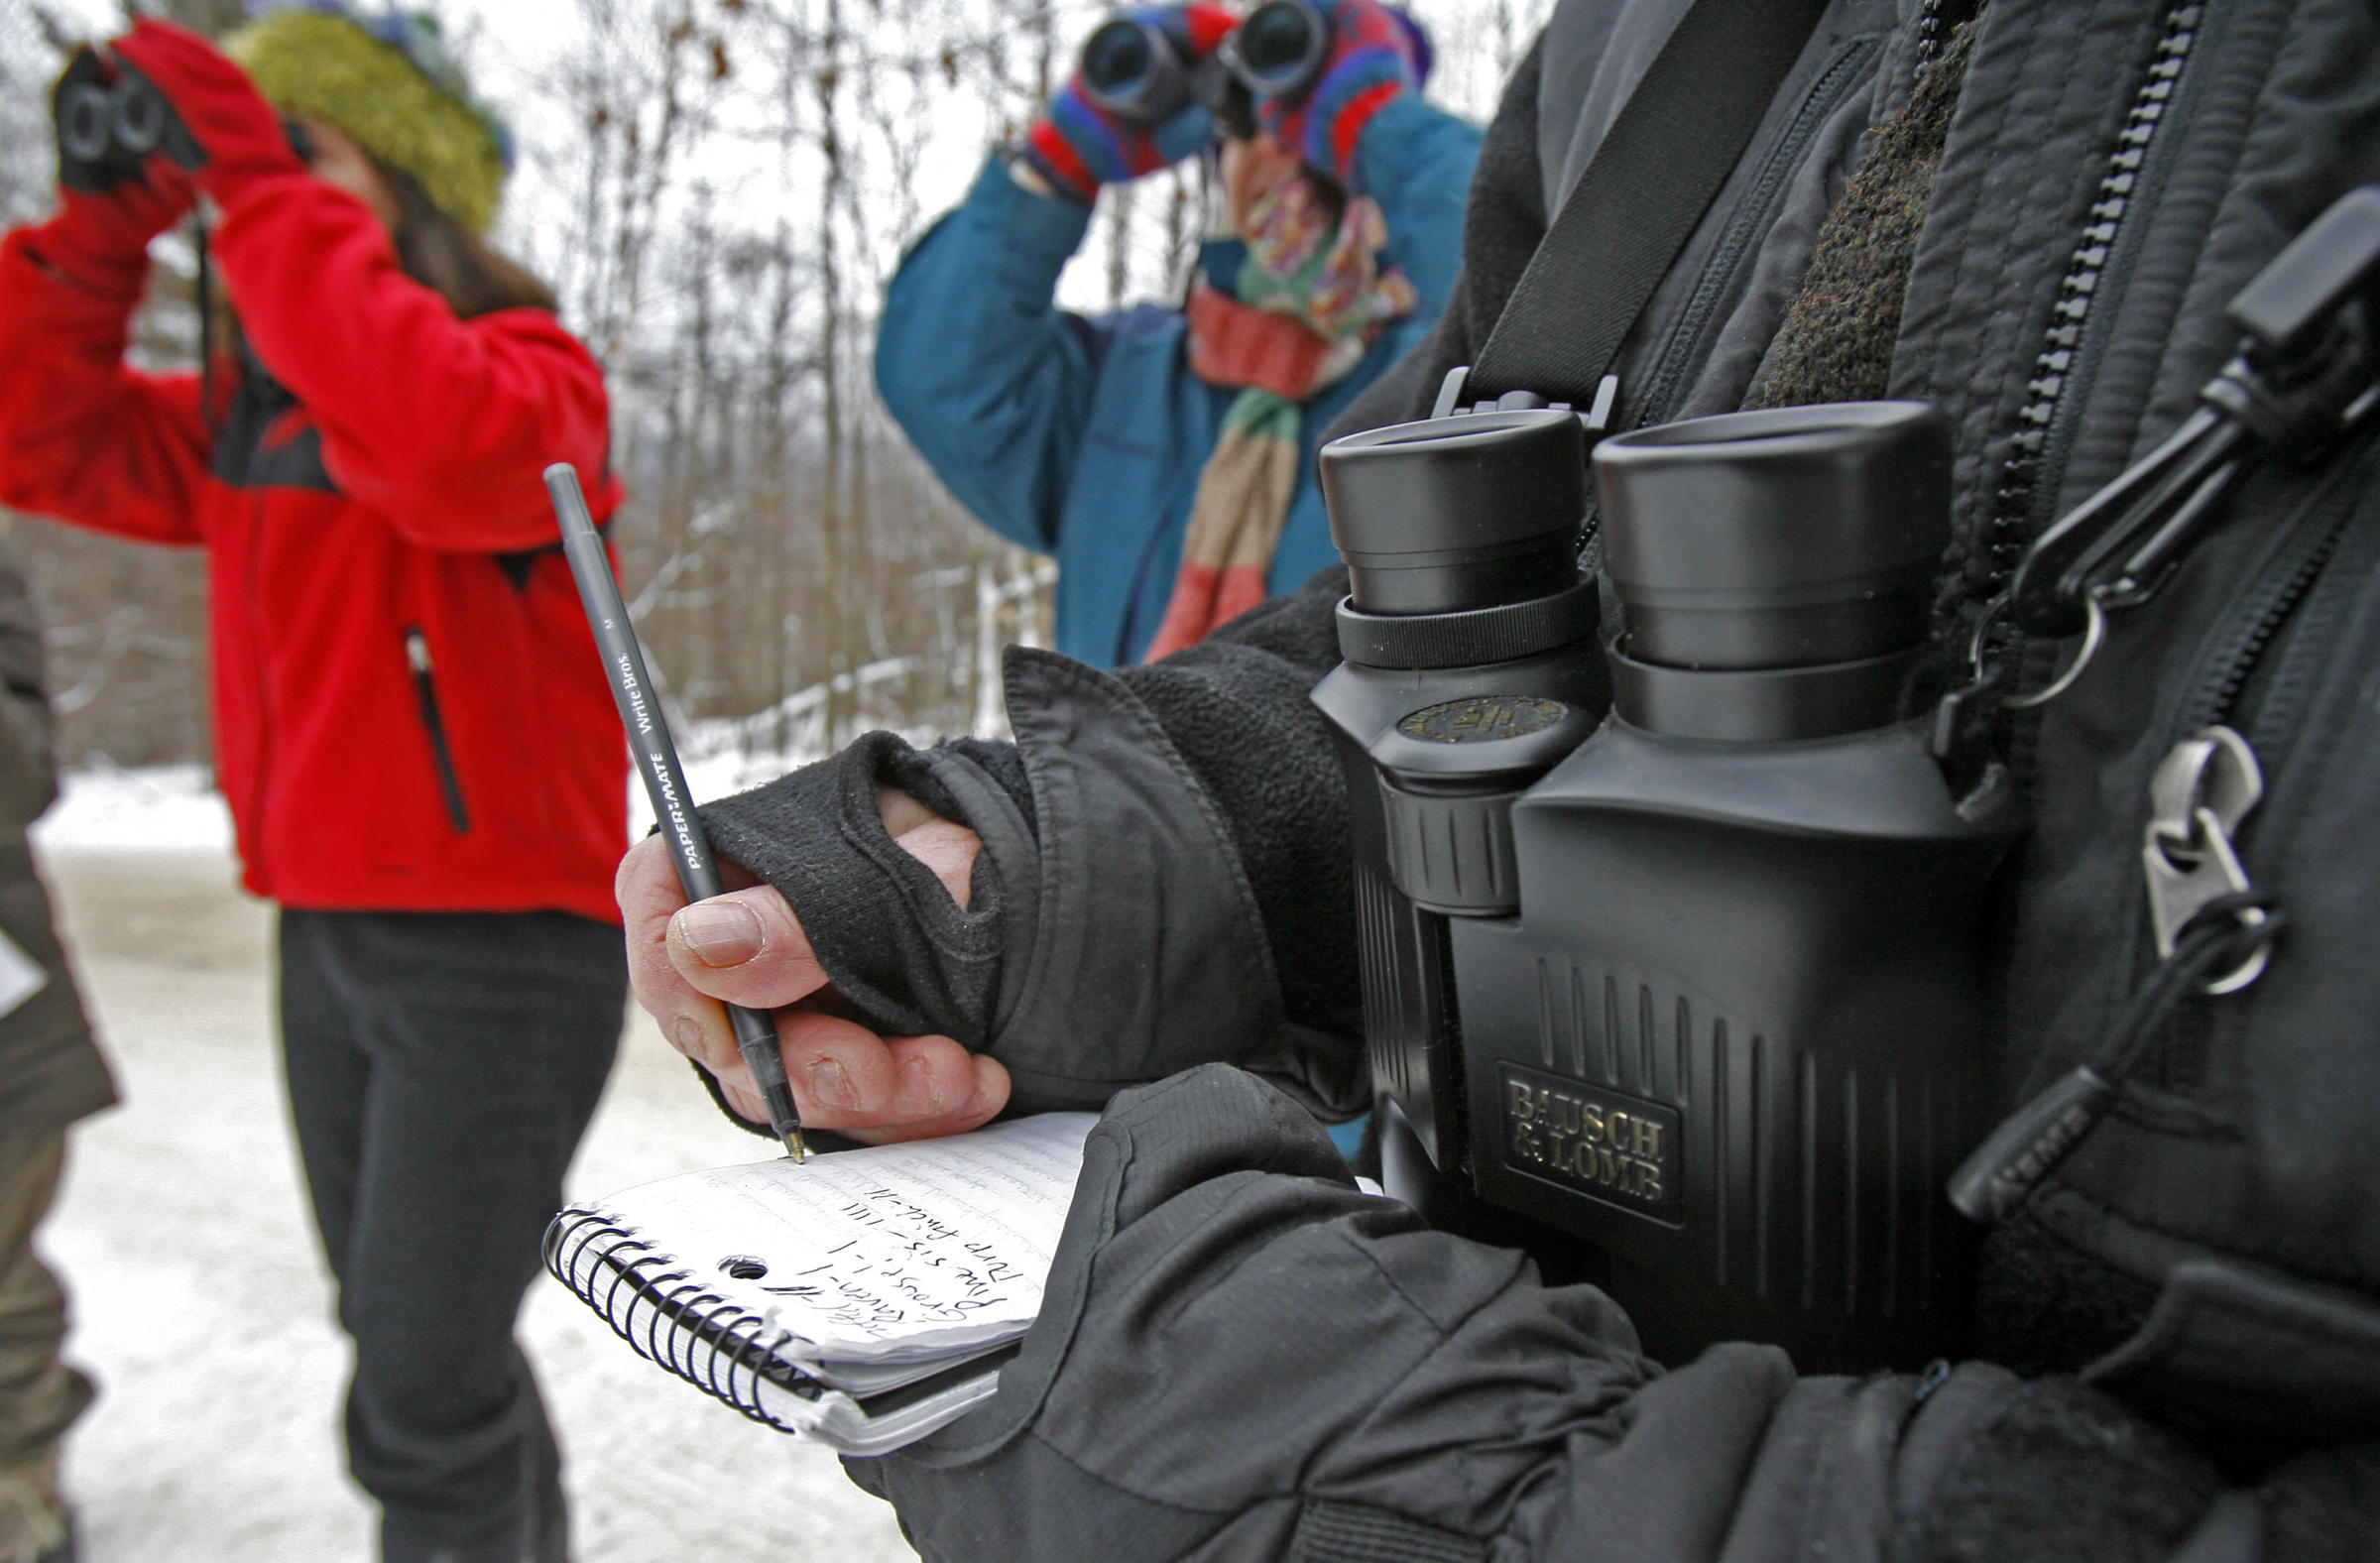 Community Brief: Volunteers needed for annual Audubon Bird Count